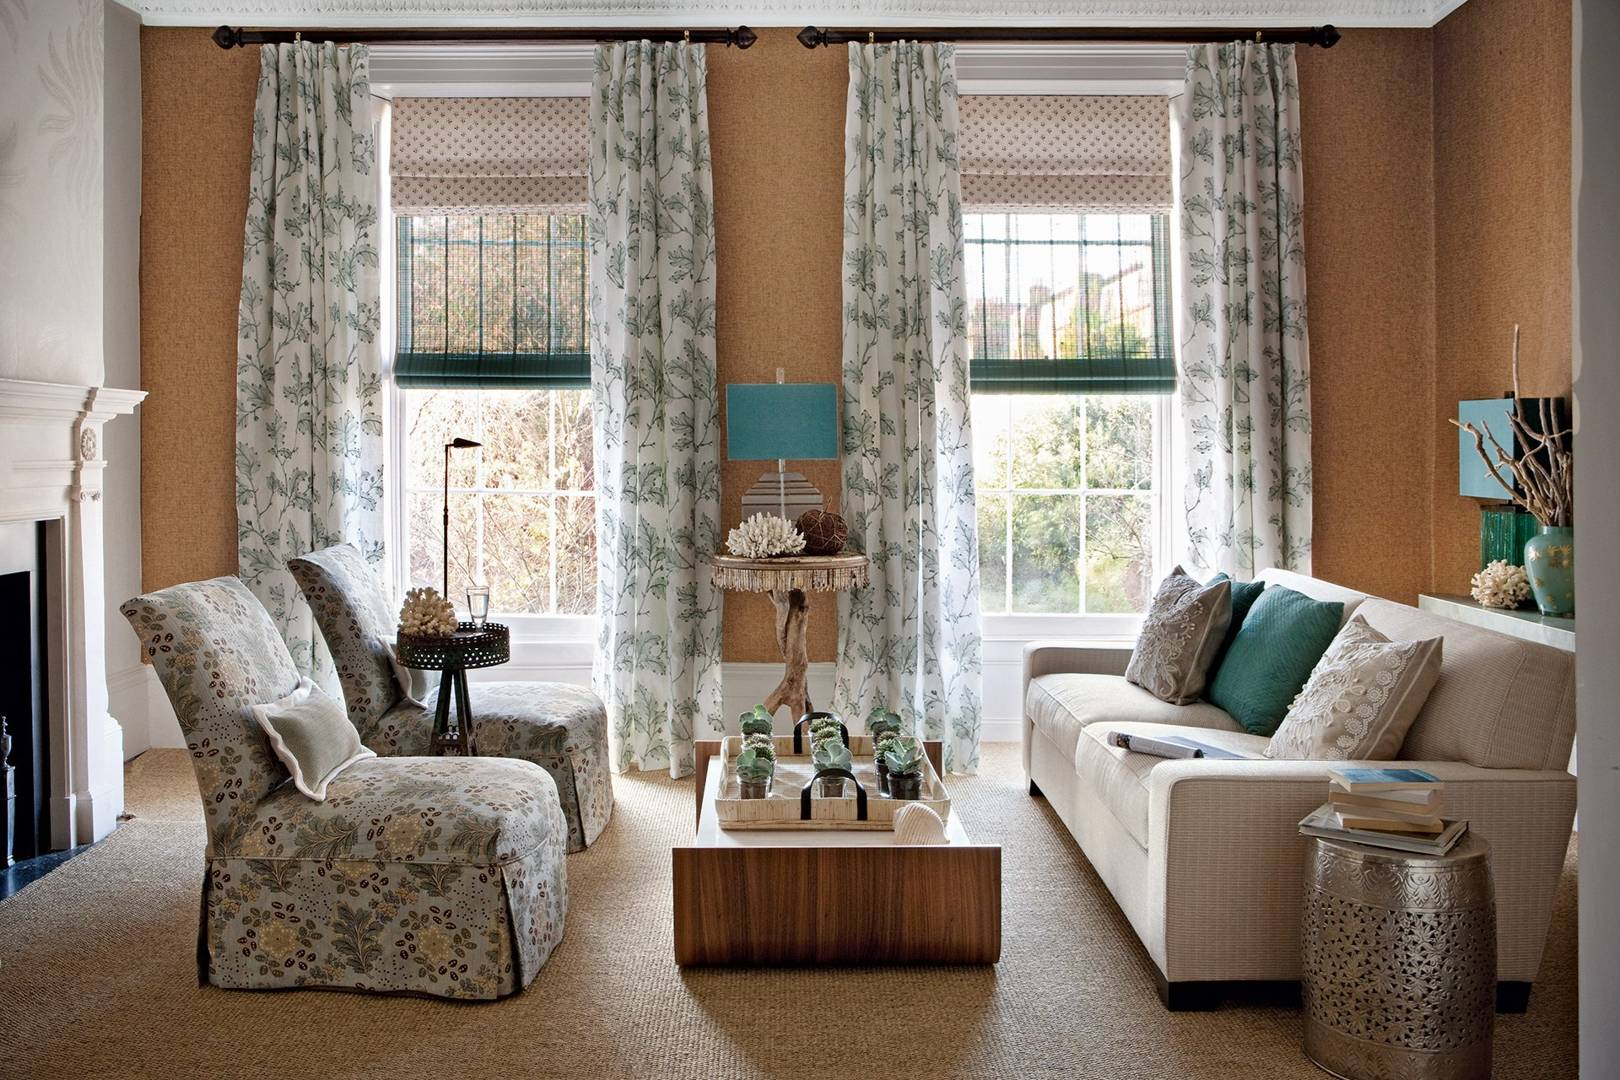 Curtains and blinds: ideas chosen by our decoration director | House on insurance for small homes, interior designs for small homes, style for small homes, tips for small homes, home decor for small homes, furniture for small homes, gardens for small homes, gifts for small homes, curtains for small homes, bar designs for small homes, interior decorating ideas for small homes,